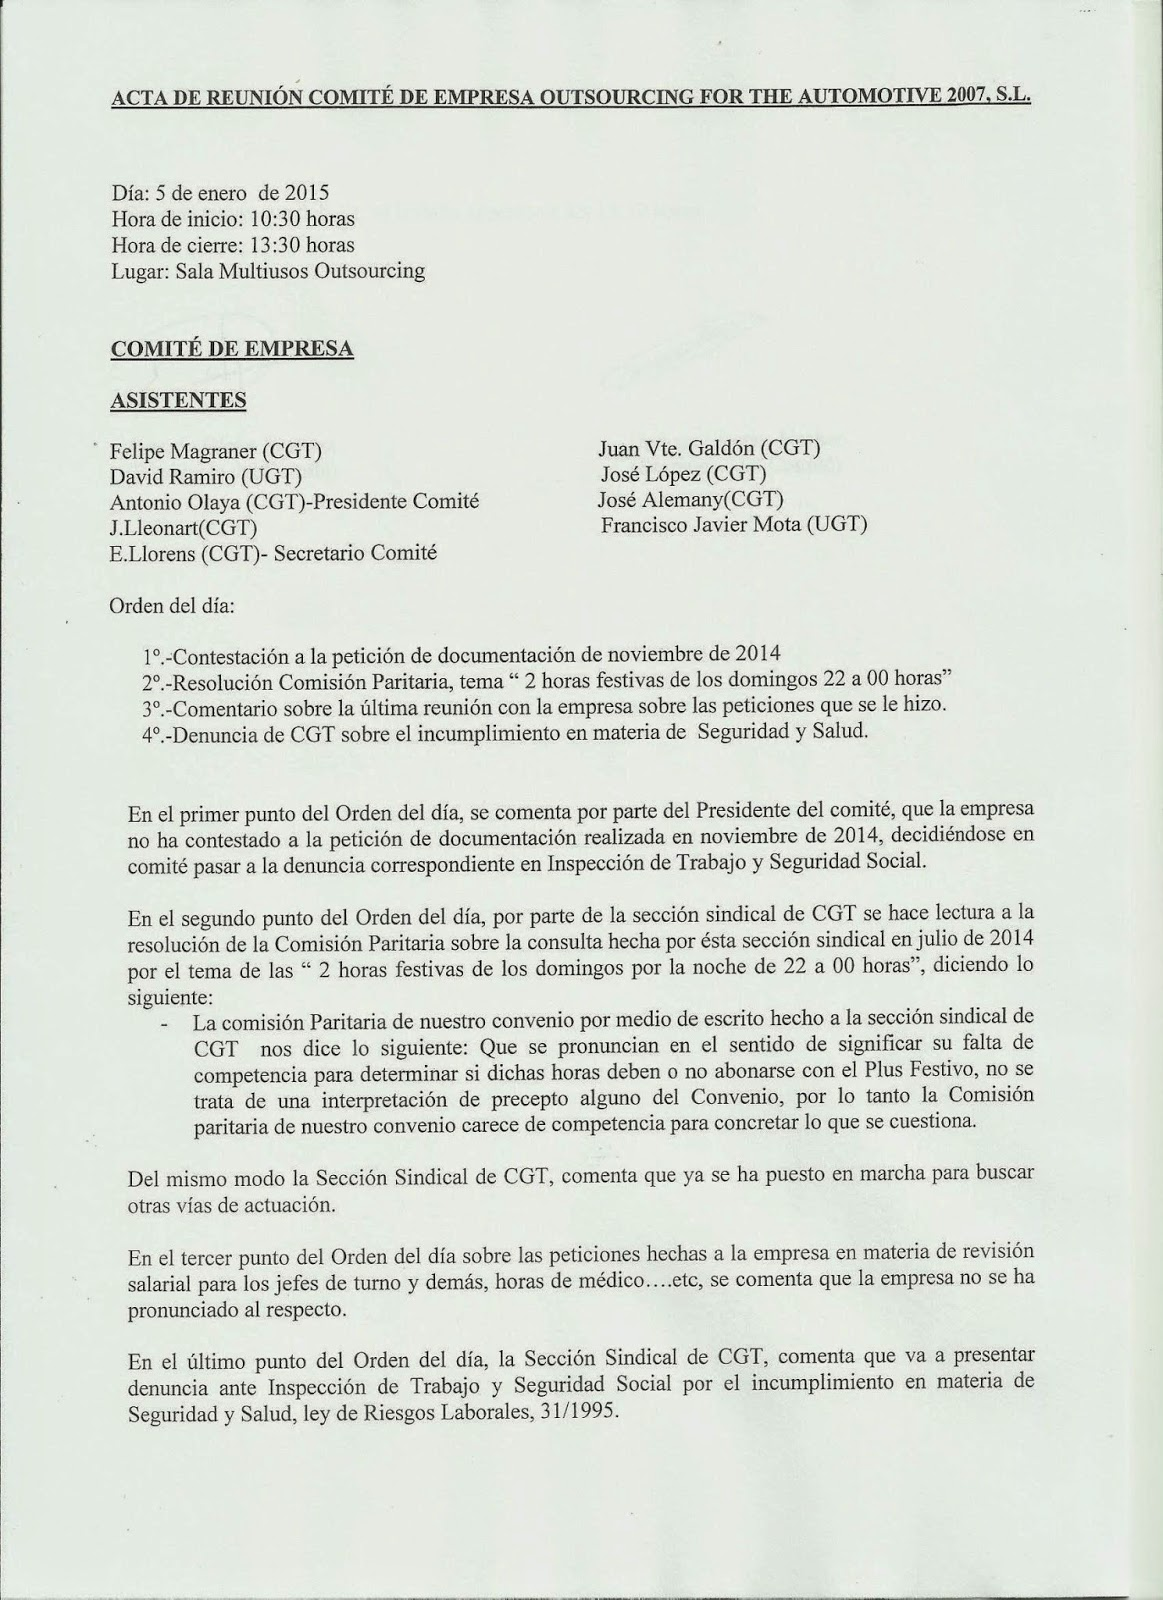 SECCIONSINDICAL CGT-OUTSOURCING: 2015